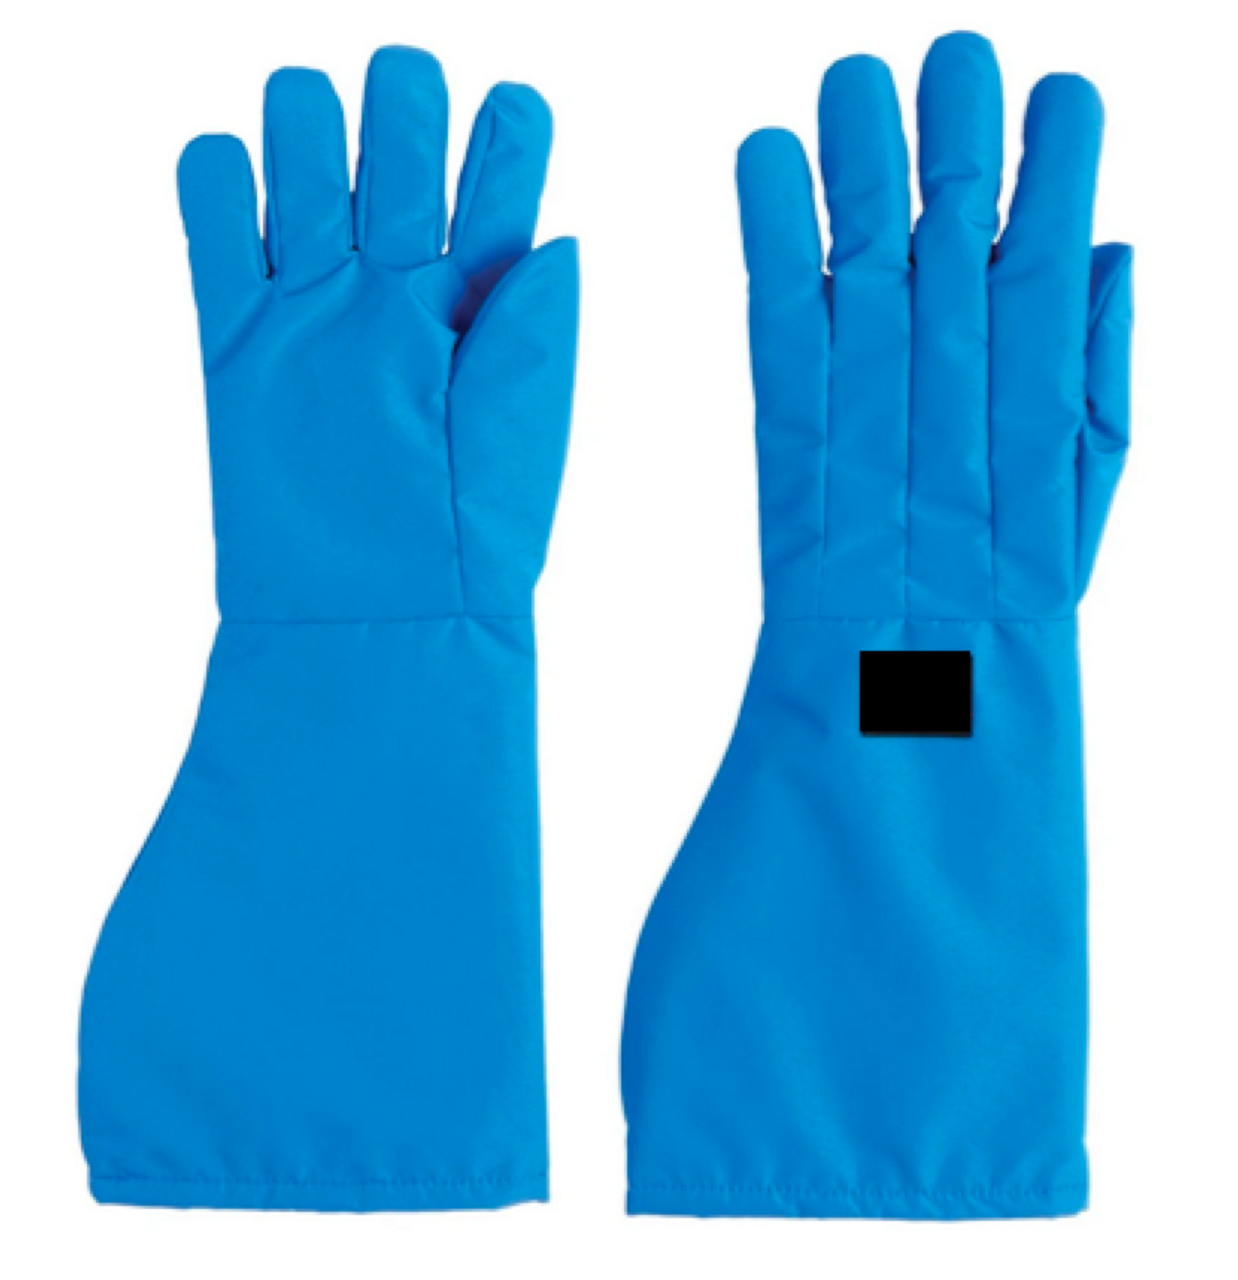 Cryo Gloves - Midarm Length - EXTRA LARGE